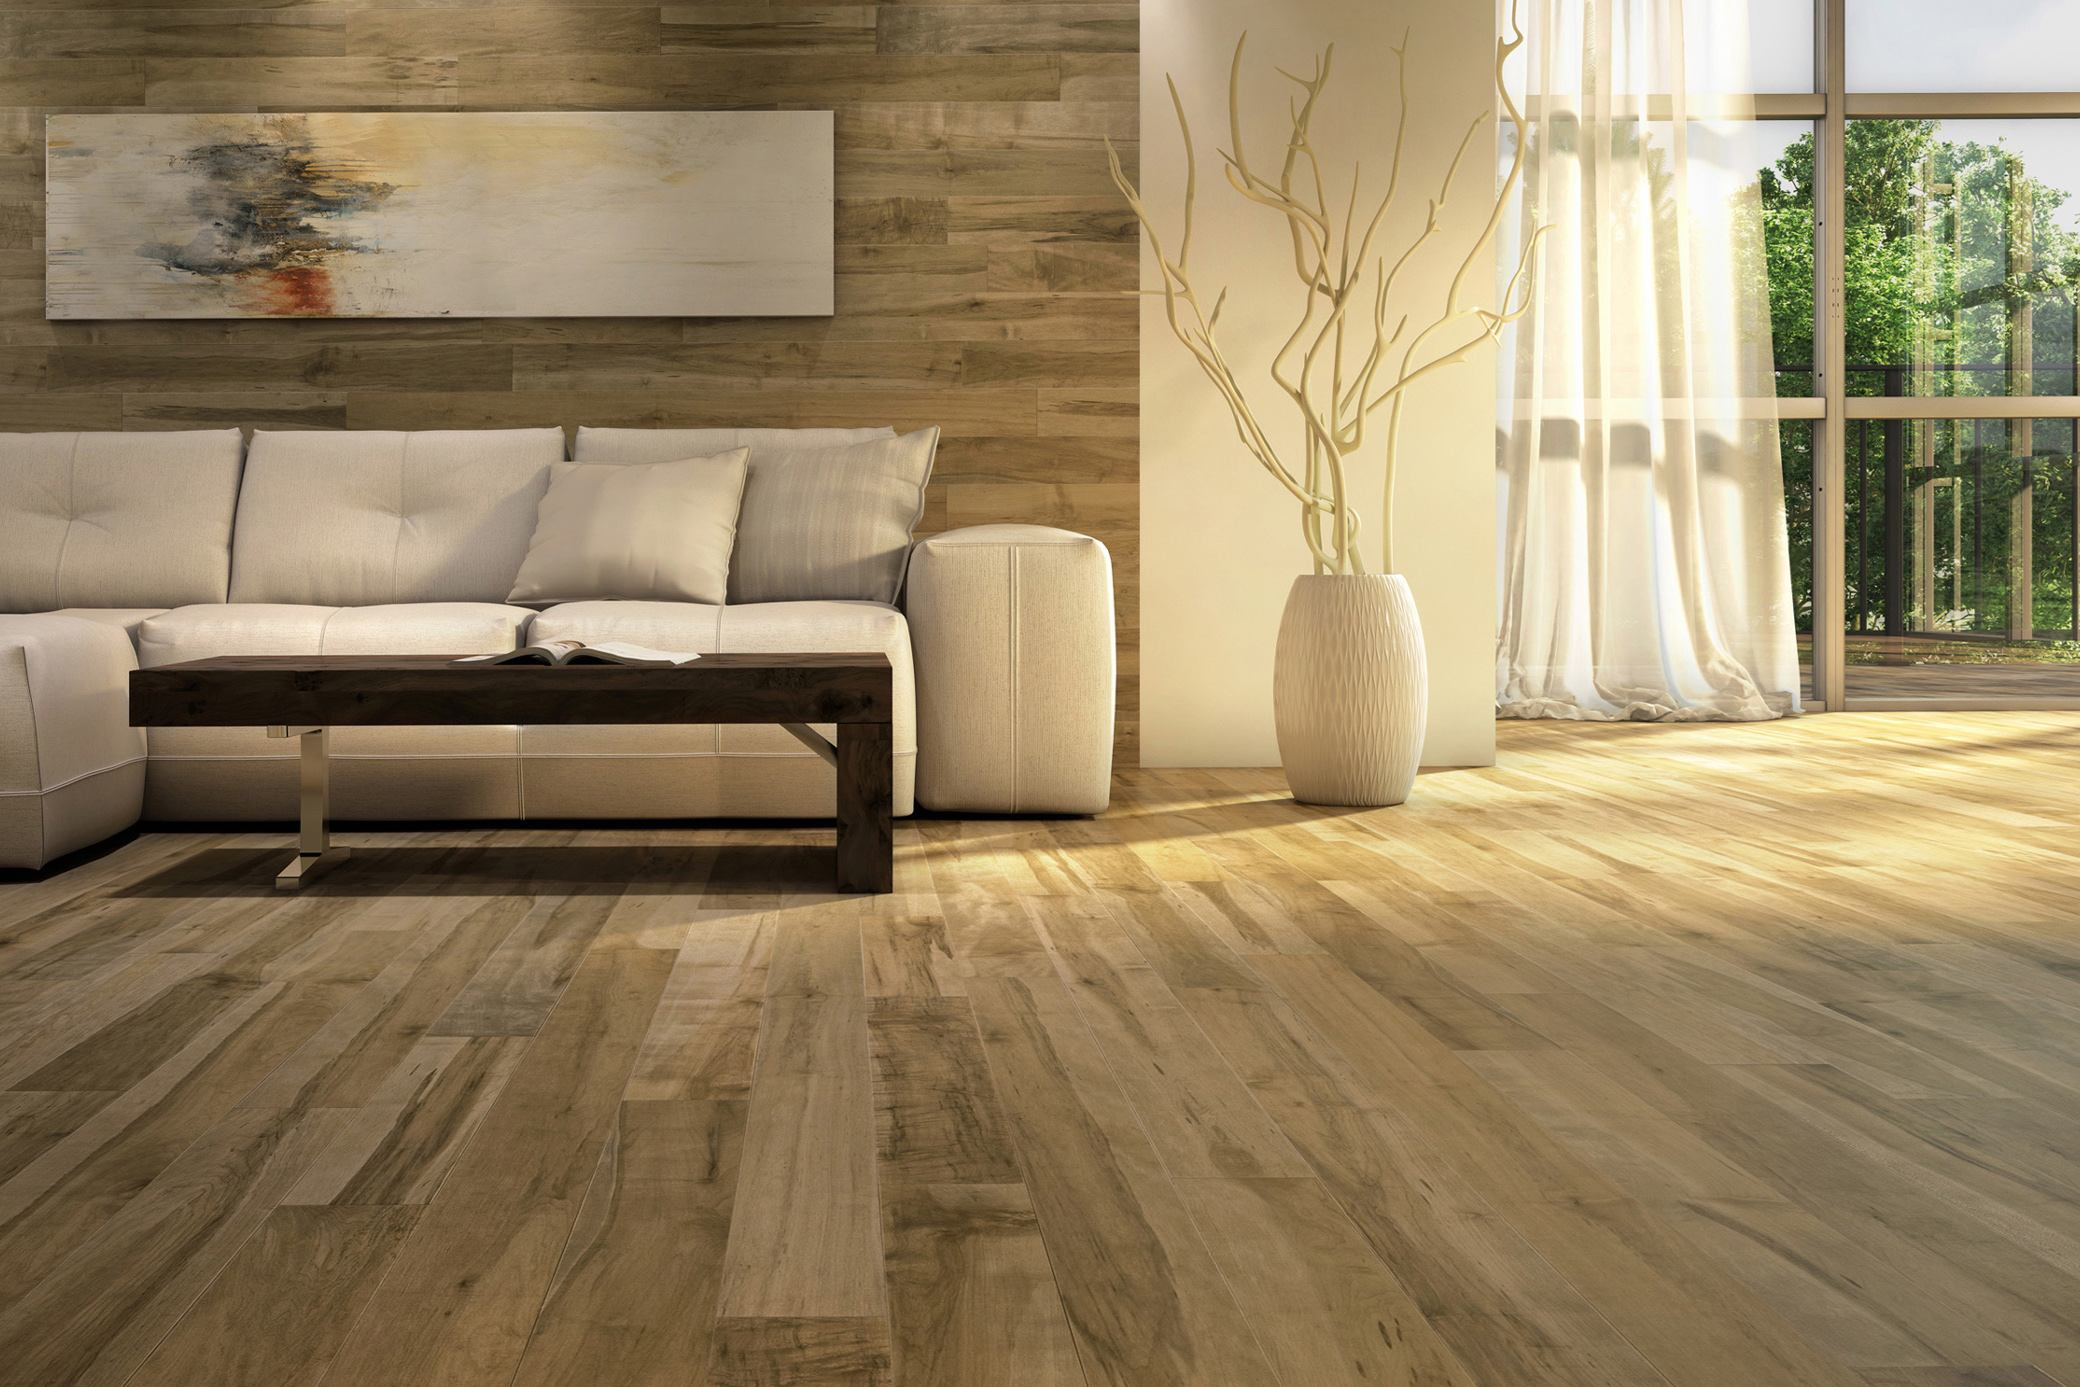 posite Flooring and Decking from Cali Bamboo EcoBuilding Pulse